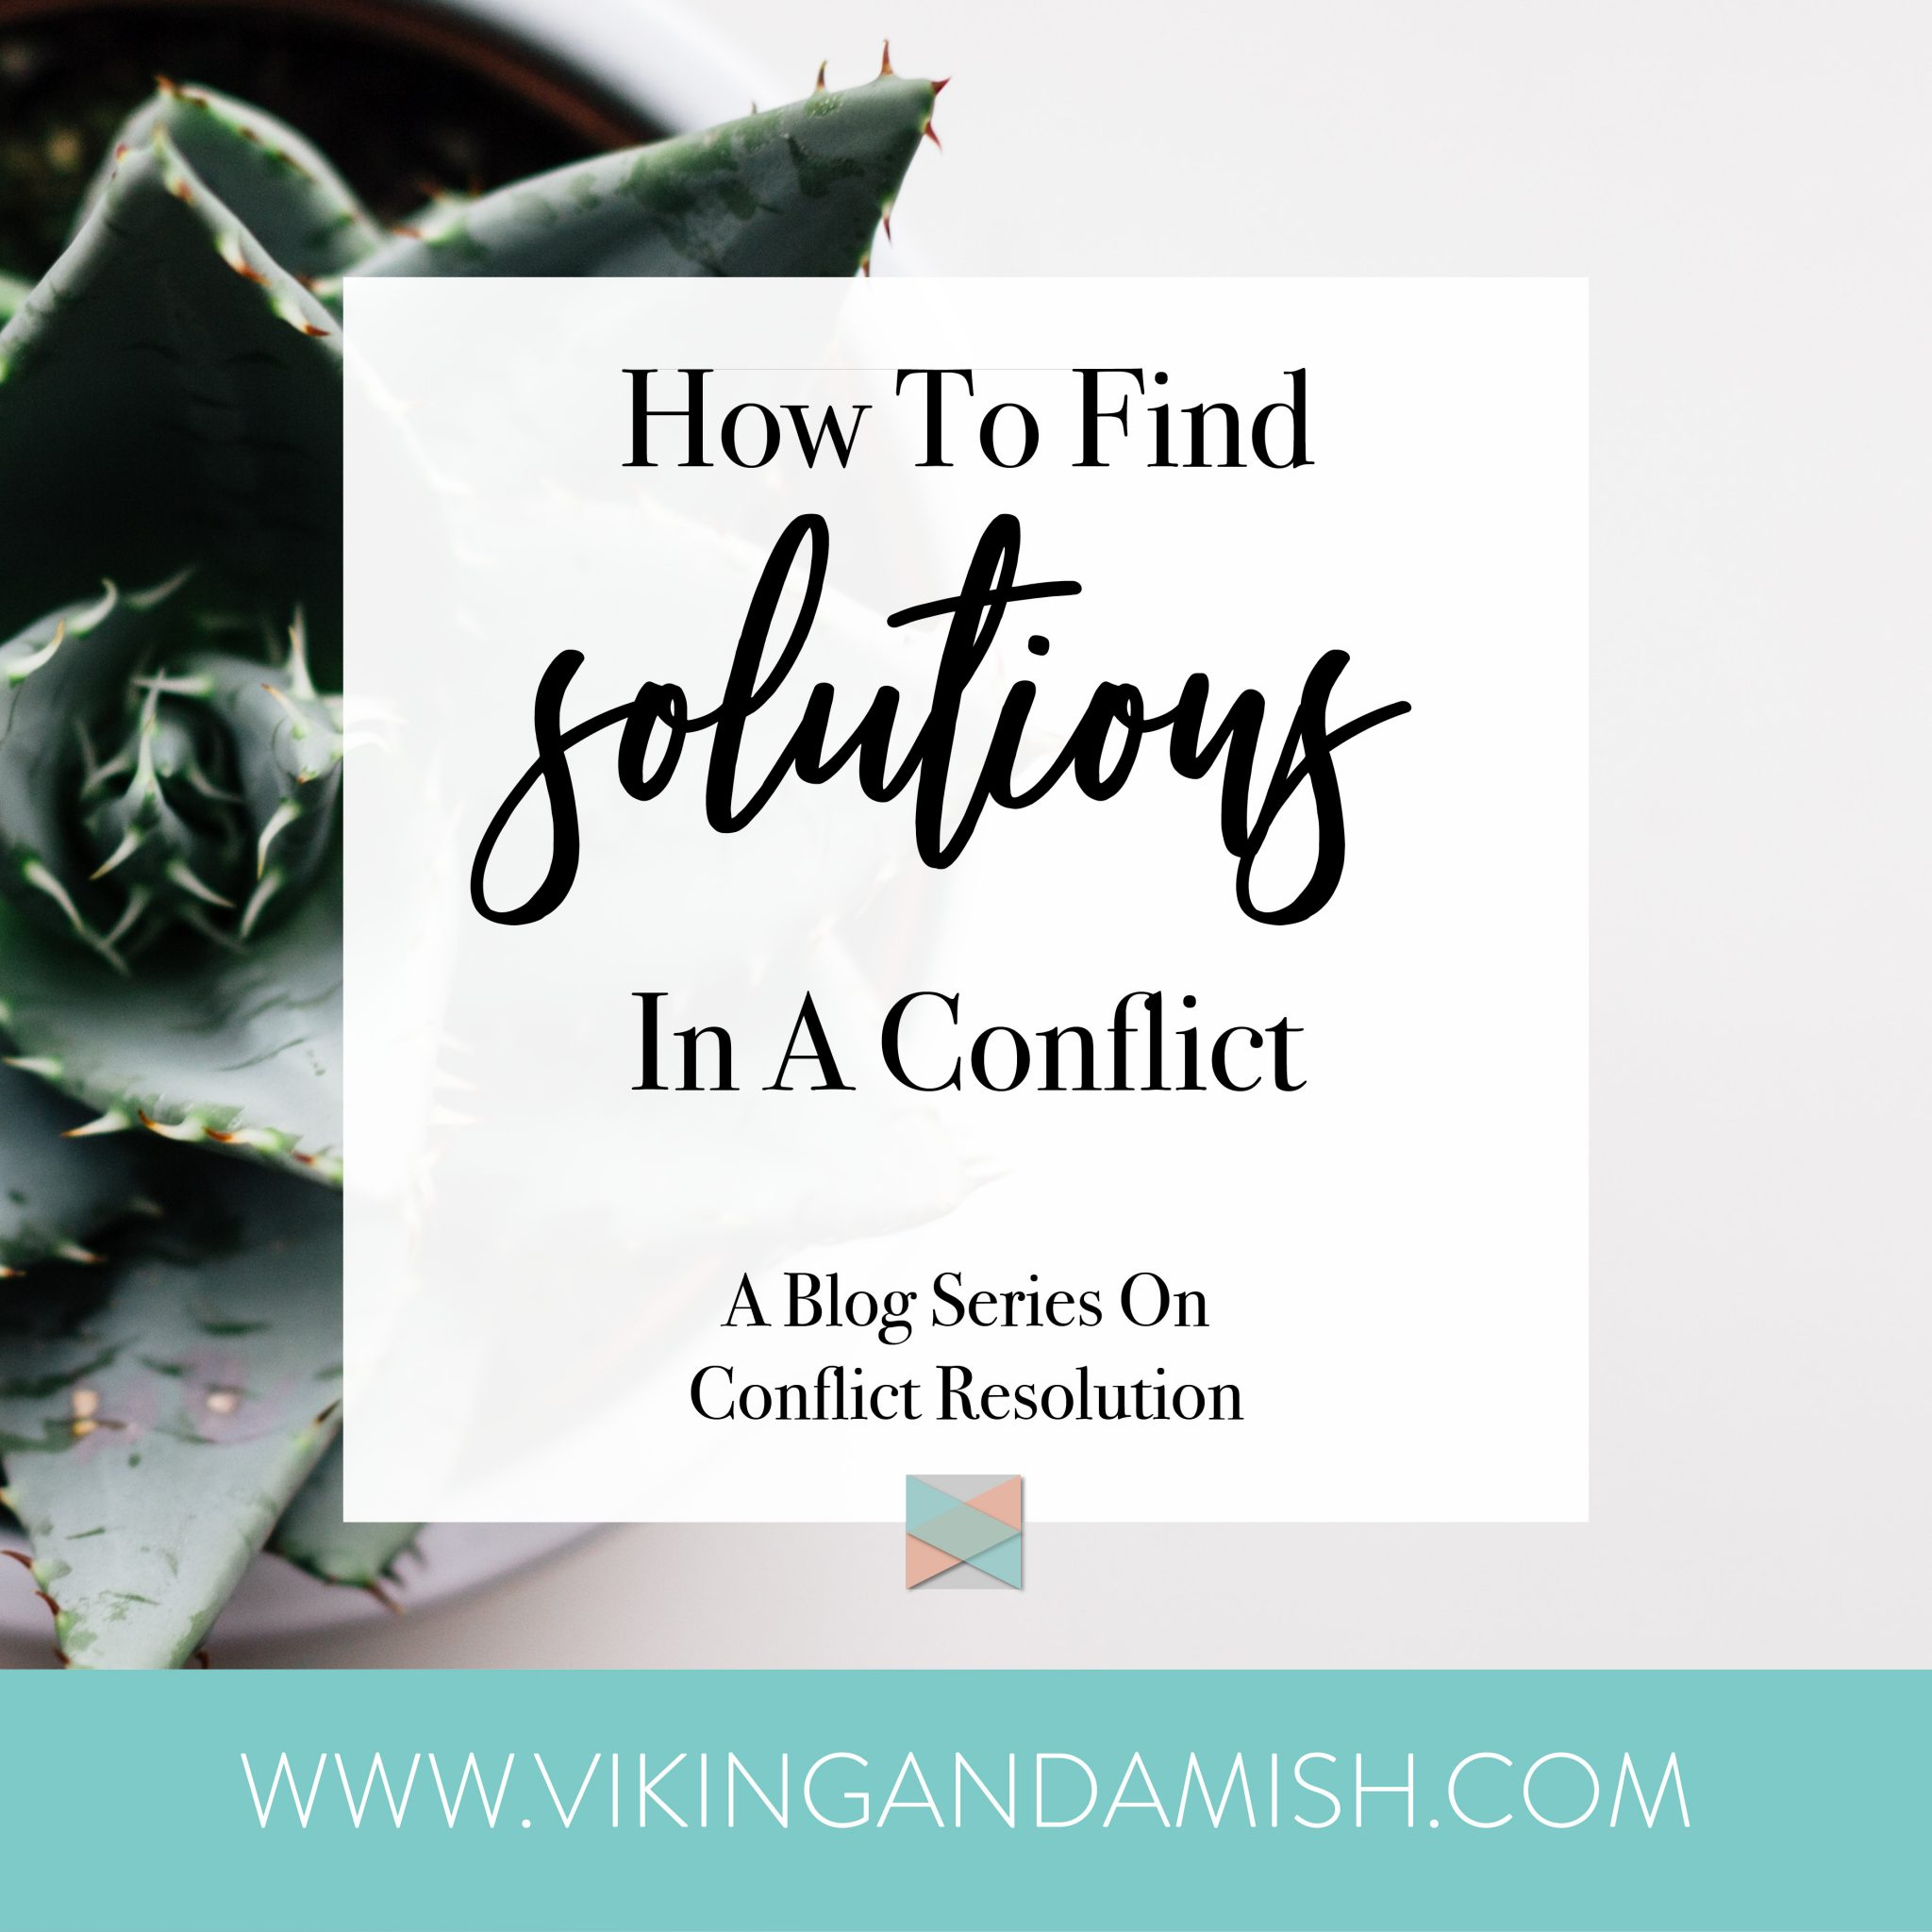 Managing conflicts and finding resolution is a skill that many people wish they were better at. This blog will teach you how to achieve win-wins and which conflict styles to avoid.